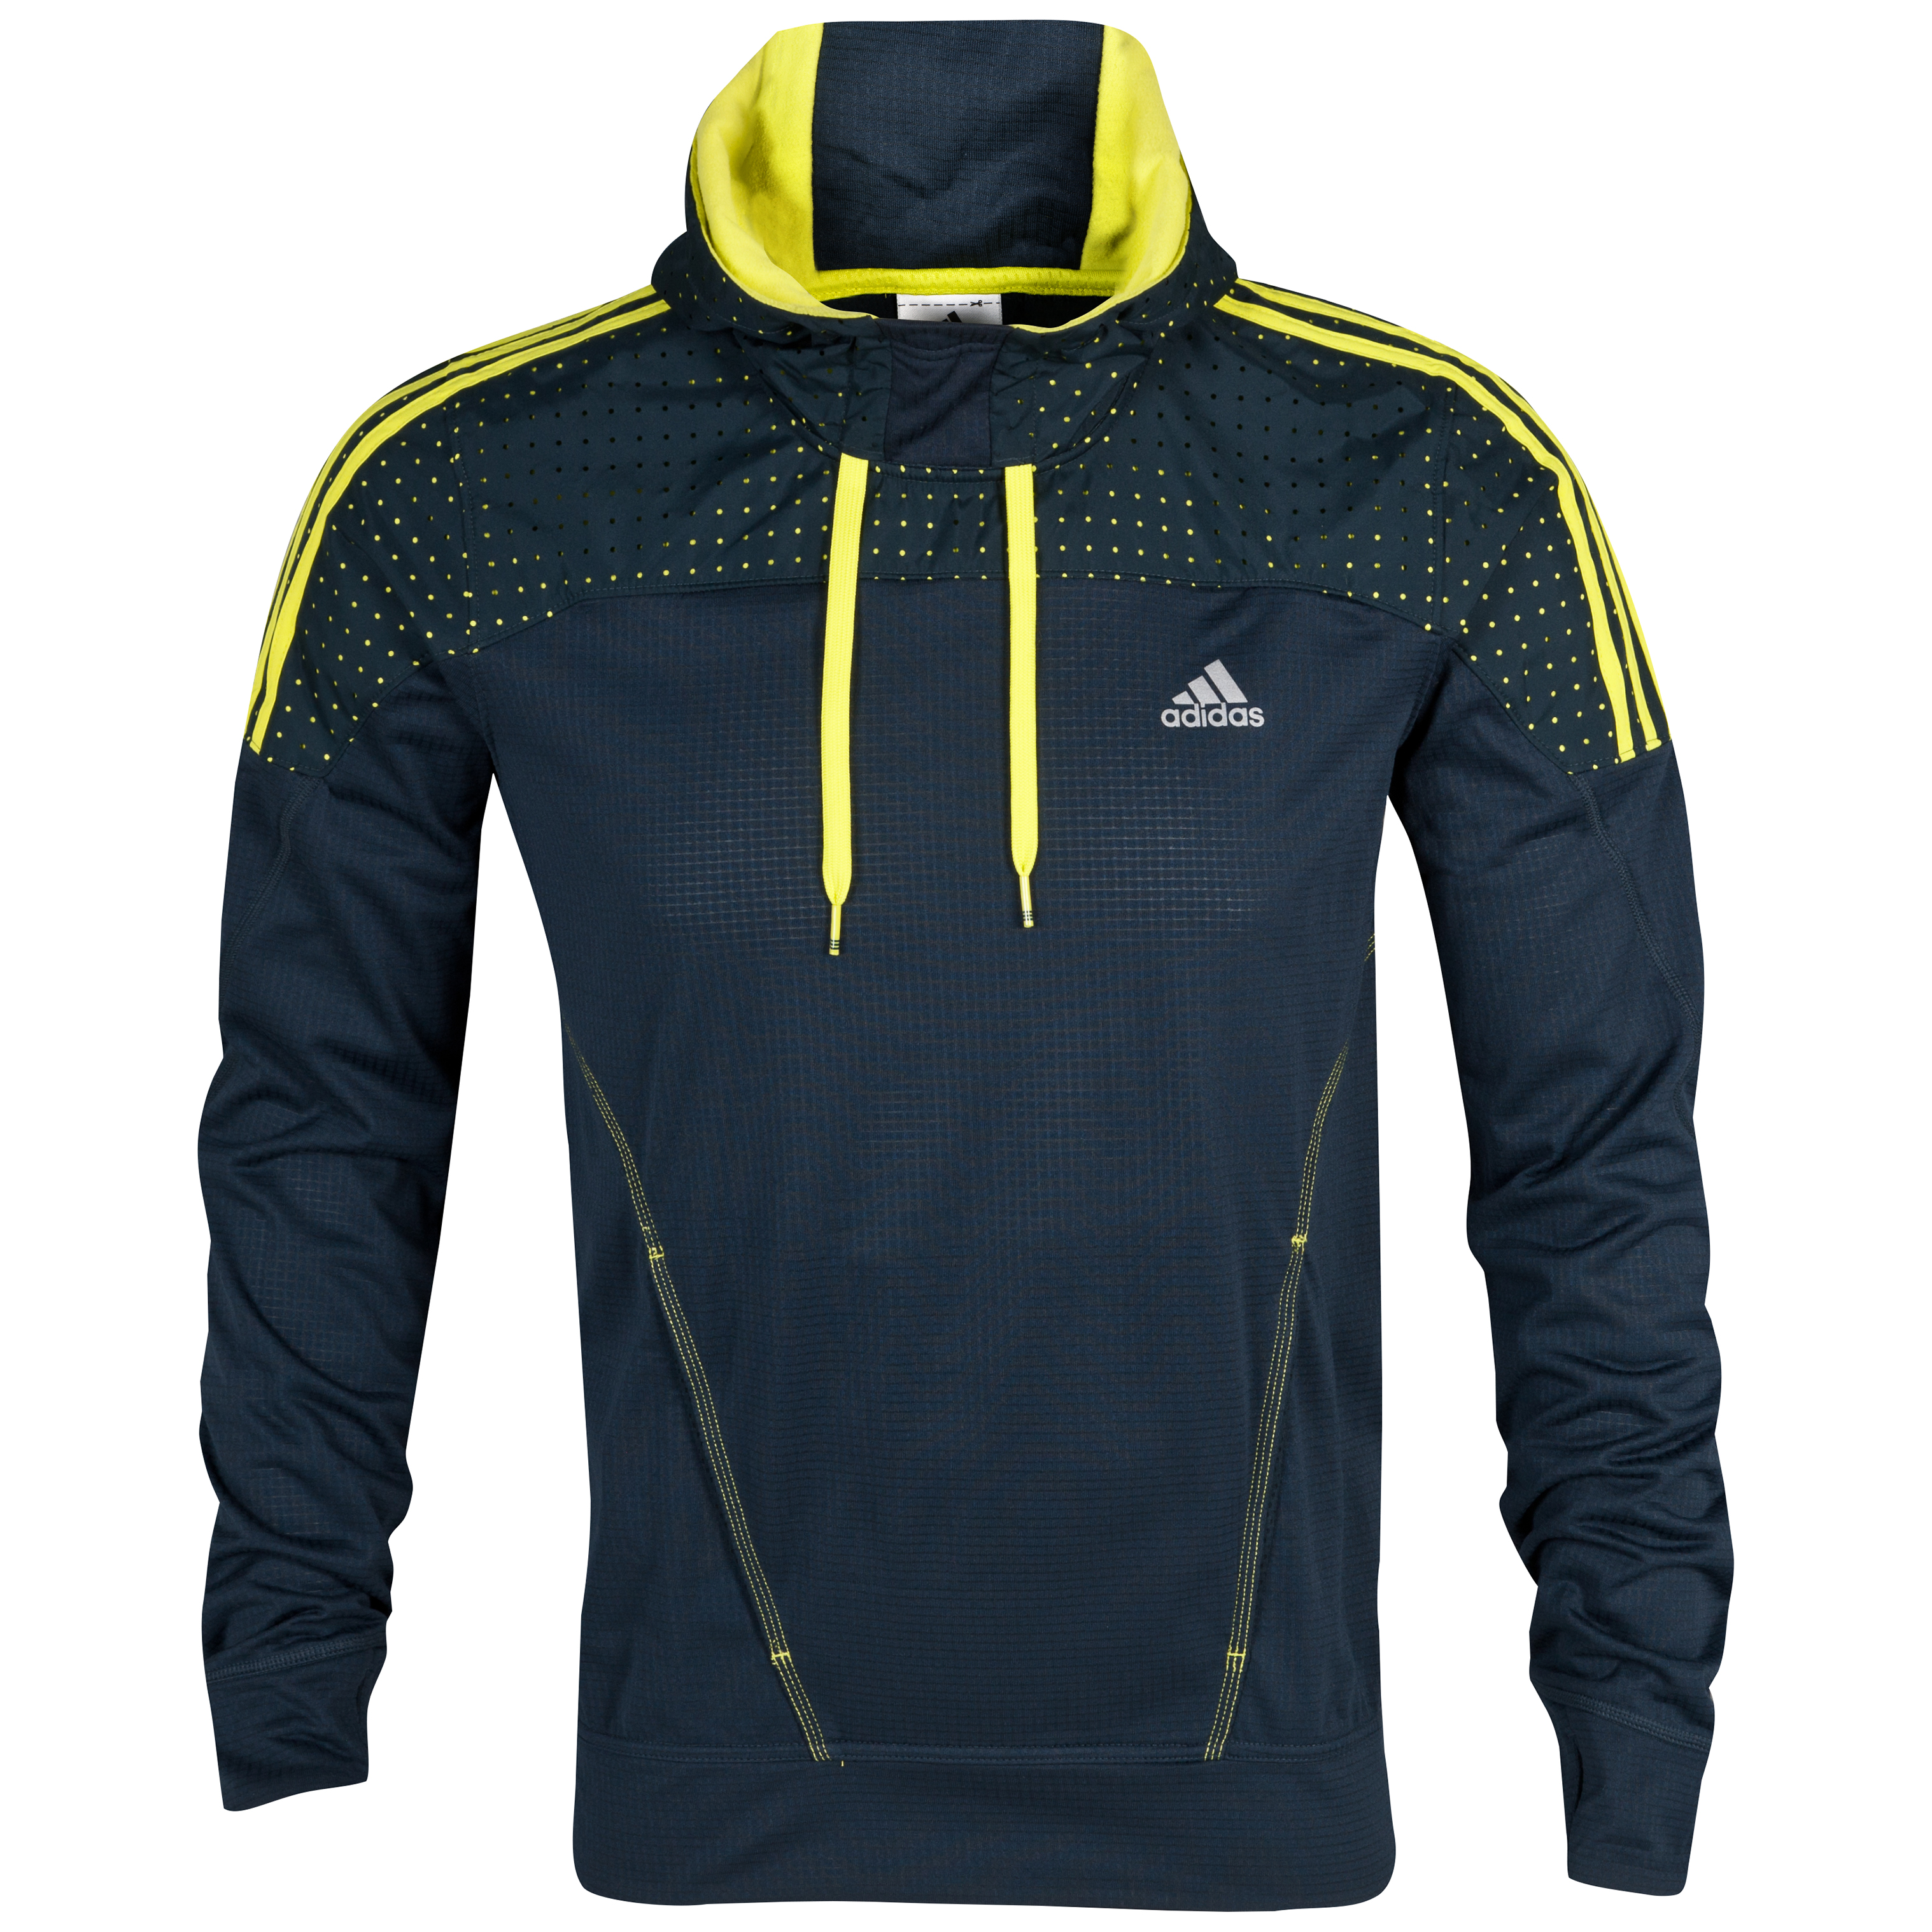 Adidas Response Icon Hoodie - Tech Onix/Lab Lime